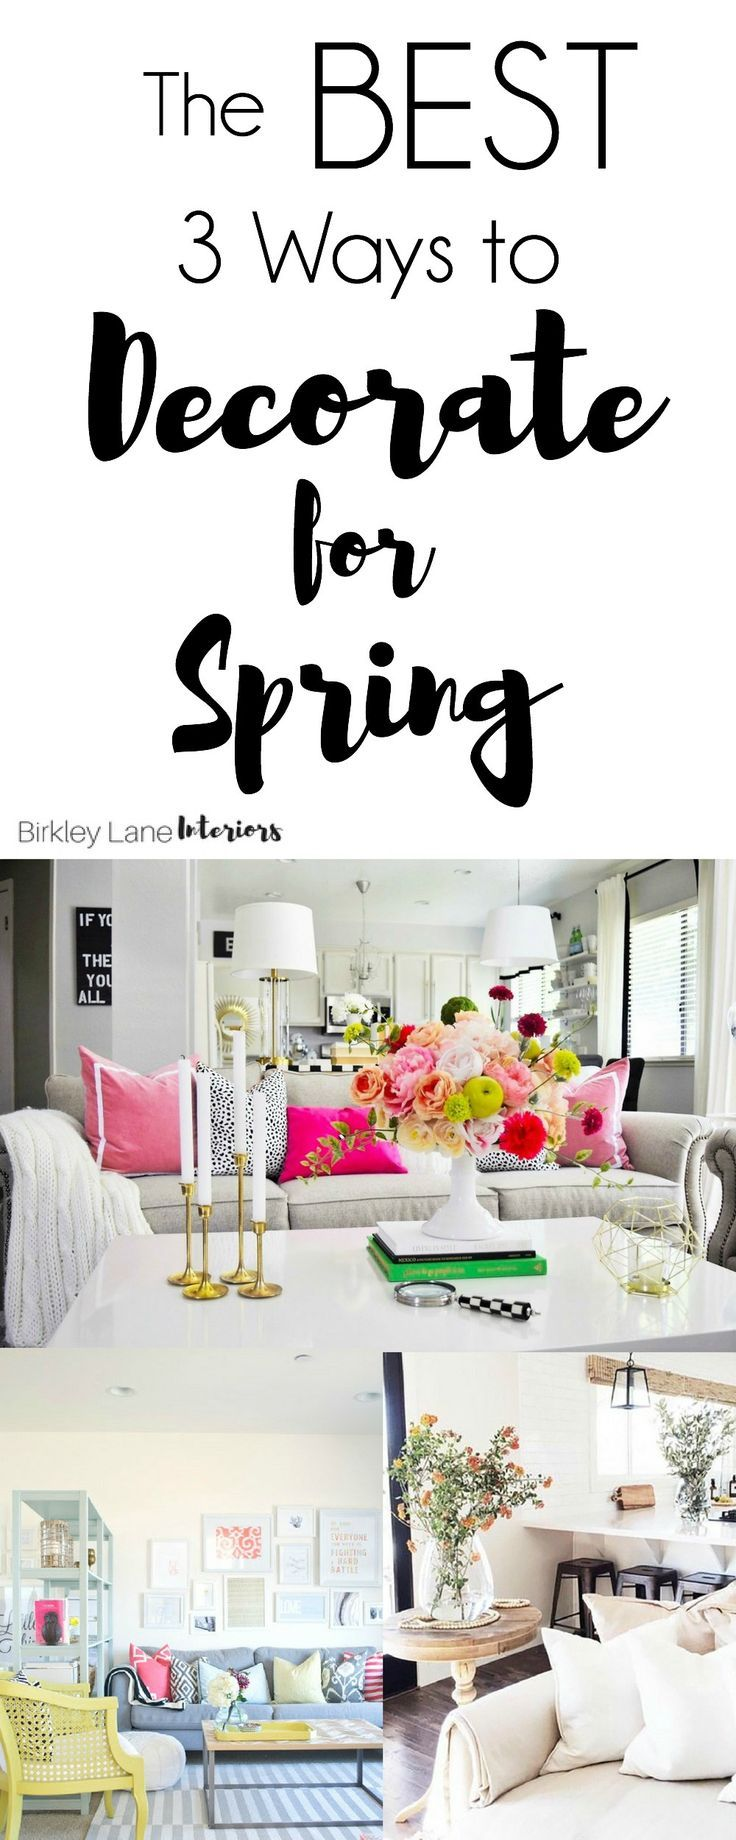 Stop here if you're looking for inspiration as you decorate for Spring! I'm sharing the best three ways you can decorate for the season! Decorate for Spring, Spring decor, how to decorate for spring, spring decor diy, spring decor ideas, spring decor for